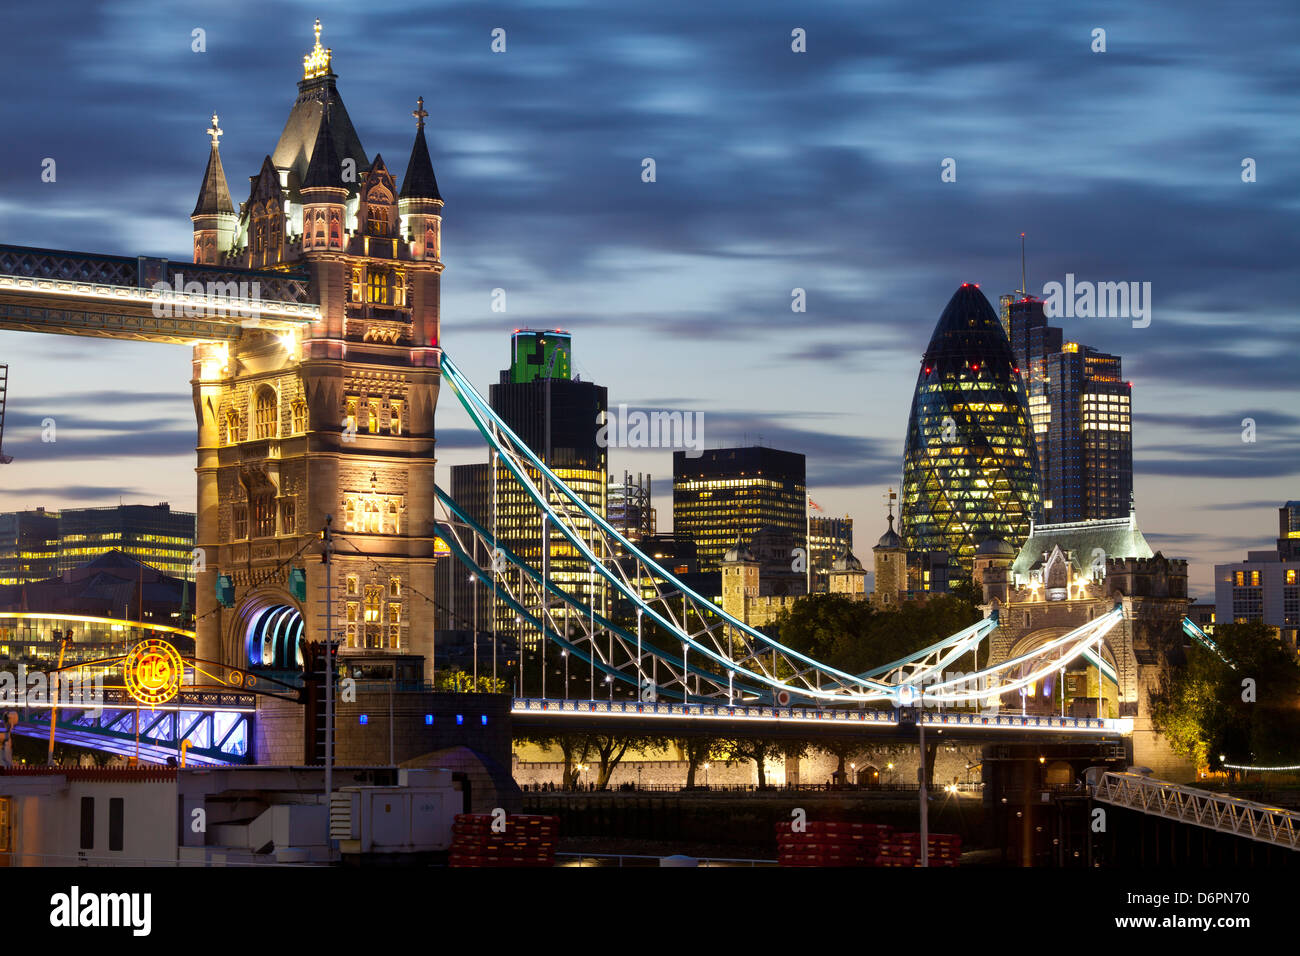 Tower Bridge and the City of London at night, London, England, United Kingdom, Europe - Stock Image